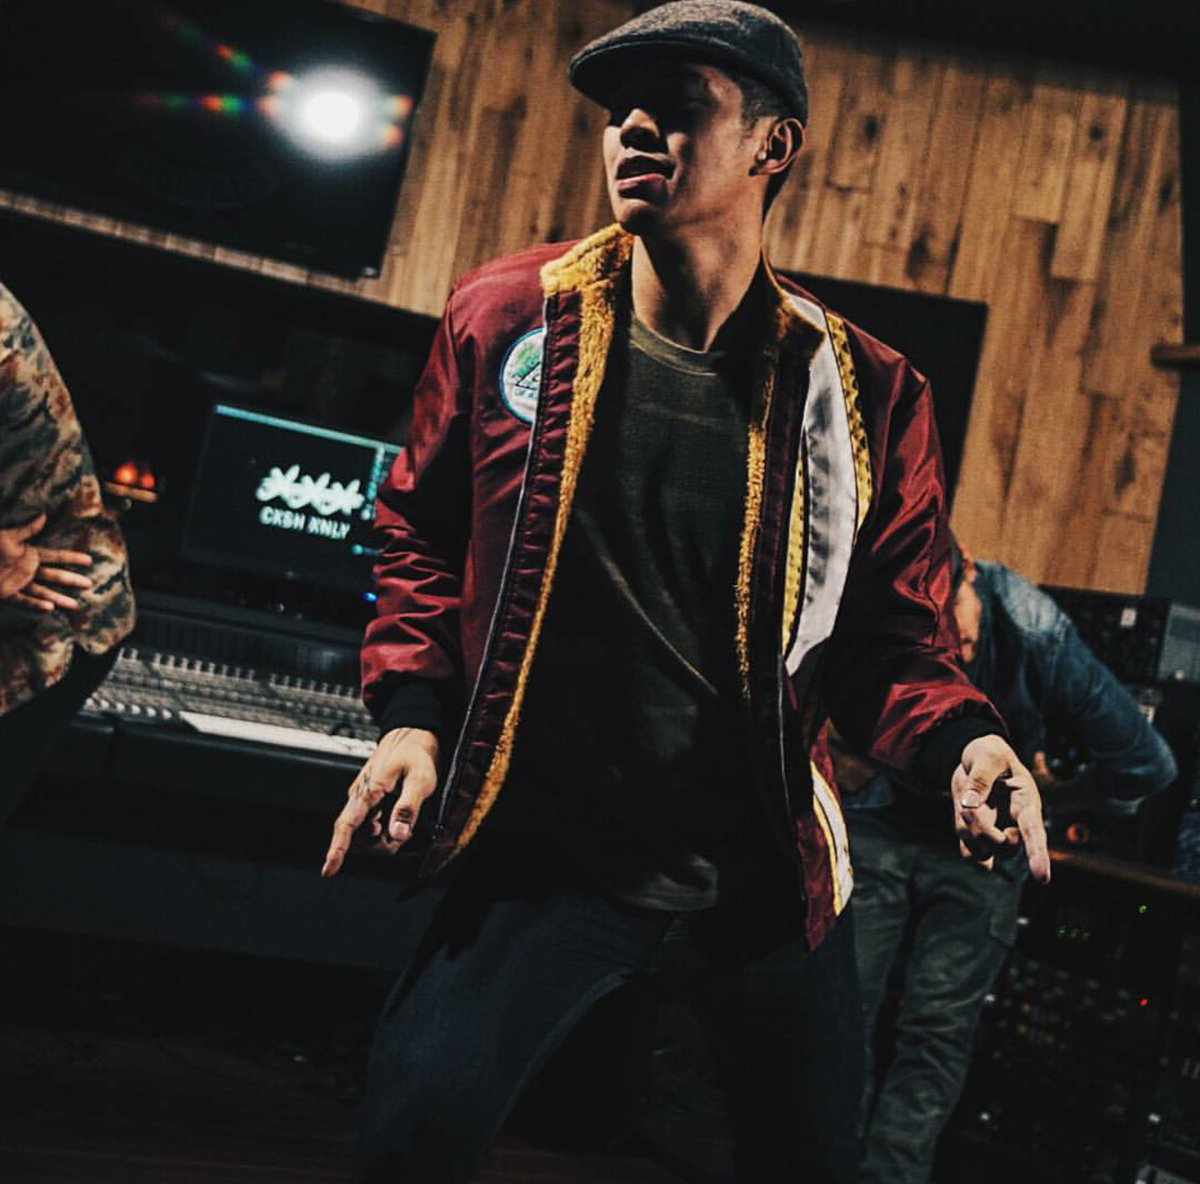 Move the couch! Check out @brianpuspos NEW video to @AndersonPaak @Knxwledge 'SUEDE' https://t.co/HR871w4bS2 https://t.co/tYImQp5RdK